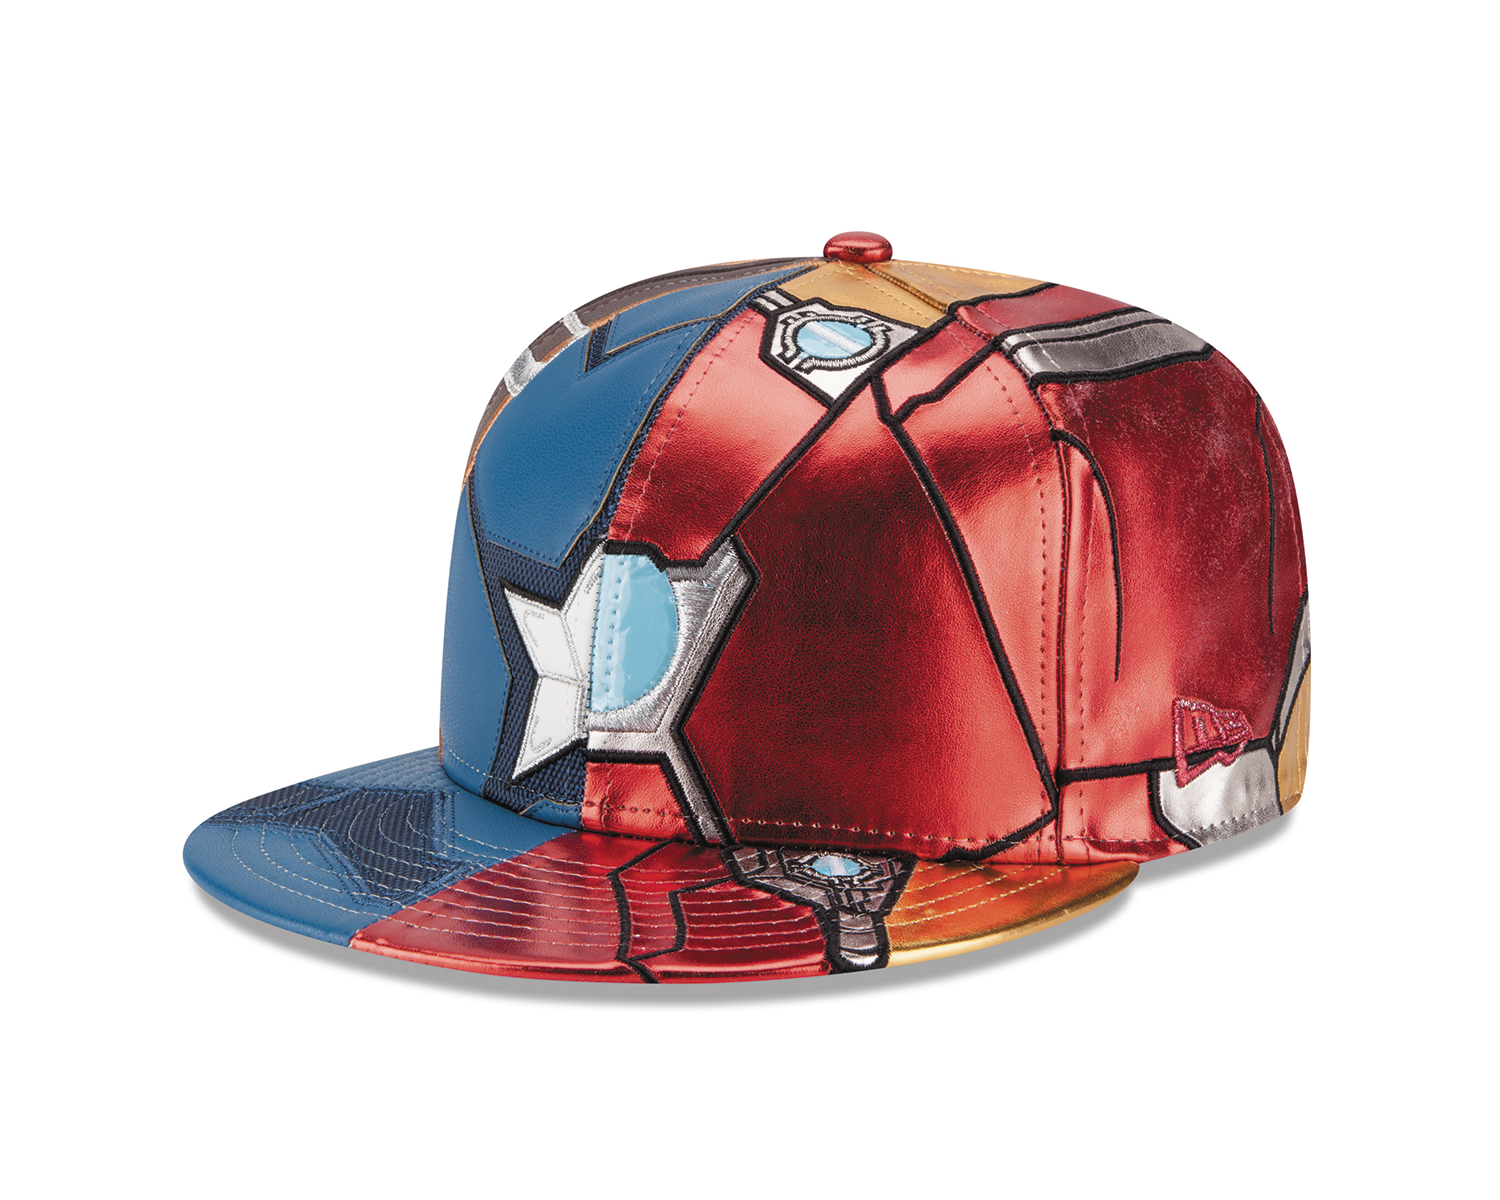 CAPTAIN AMERICA 3 CHARACTER ARMOR SPLIT FITTED CAP SZ 7 1/2